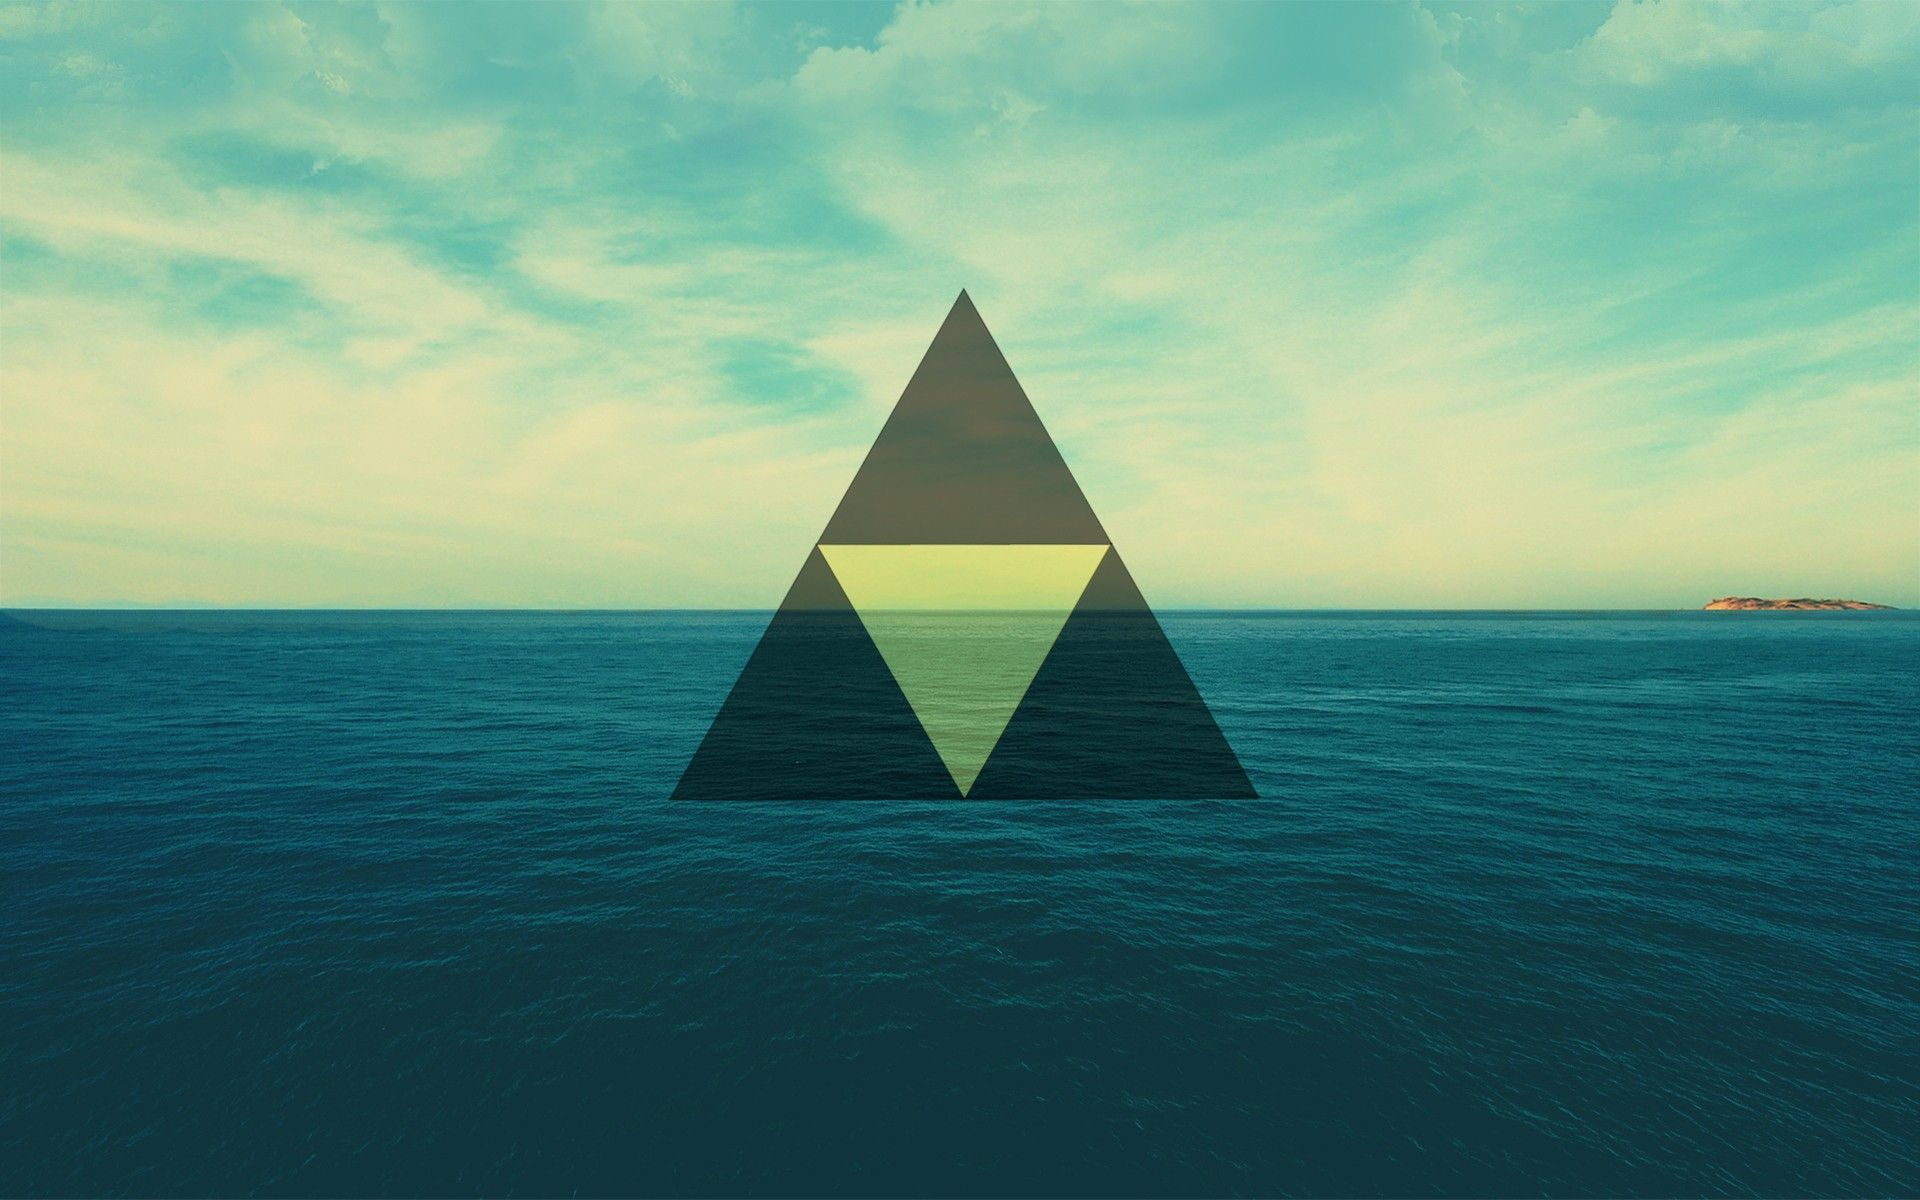 wallpapers for gt hipster desktop backgrounds tumblr triangles 1920a—1080 hipster wallpapers 39